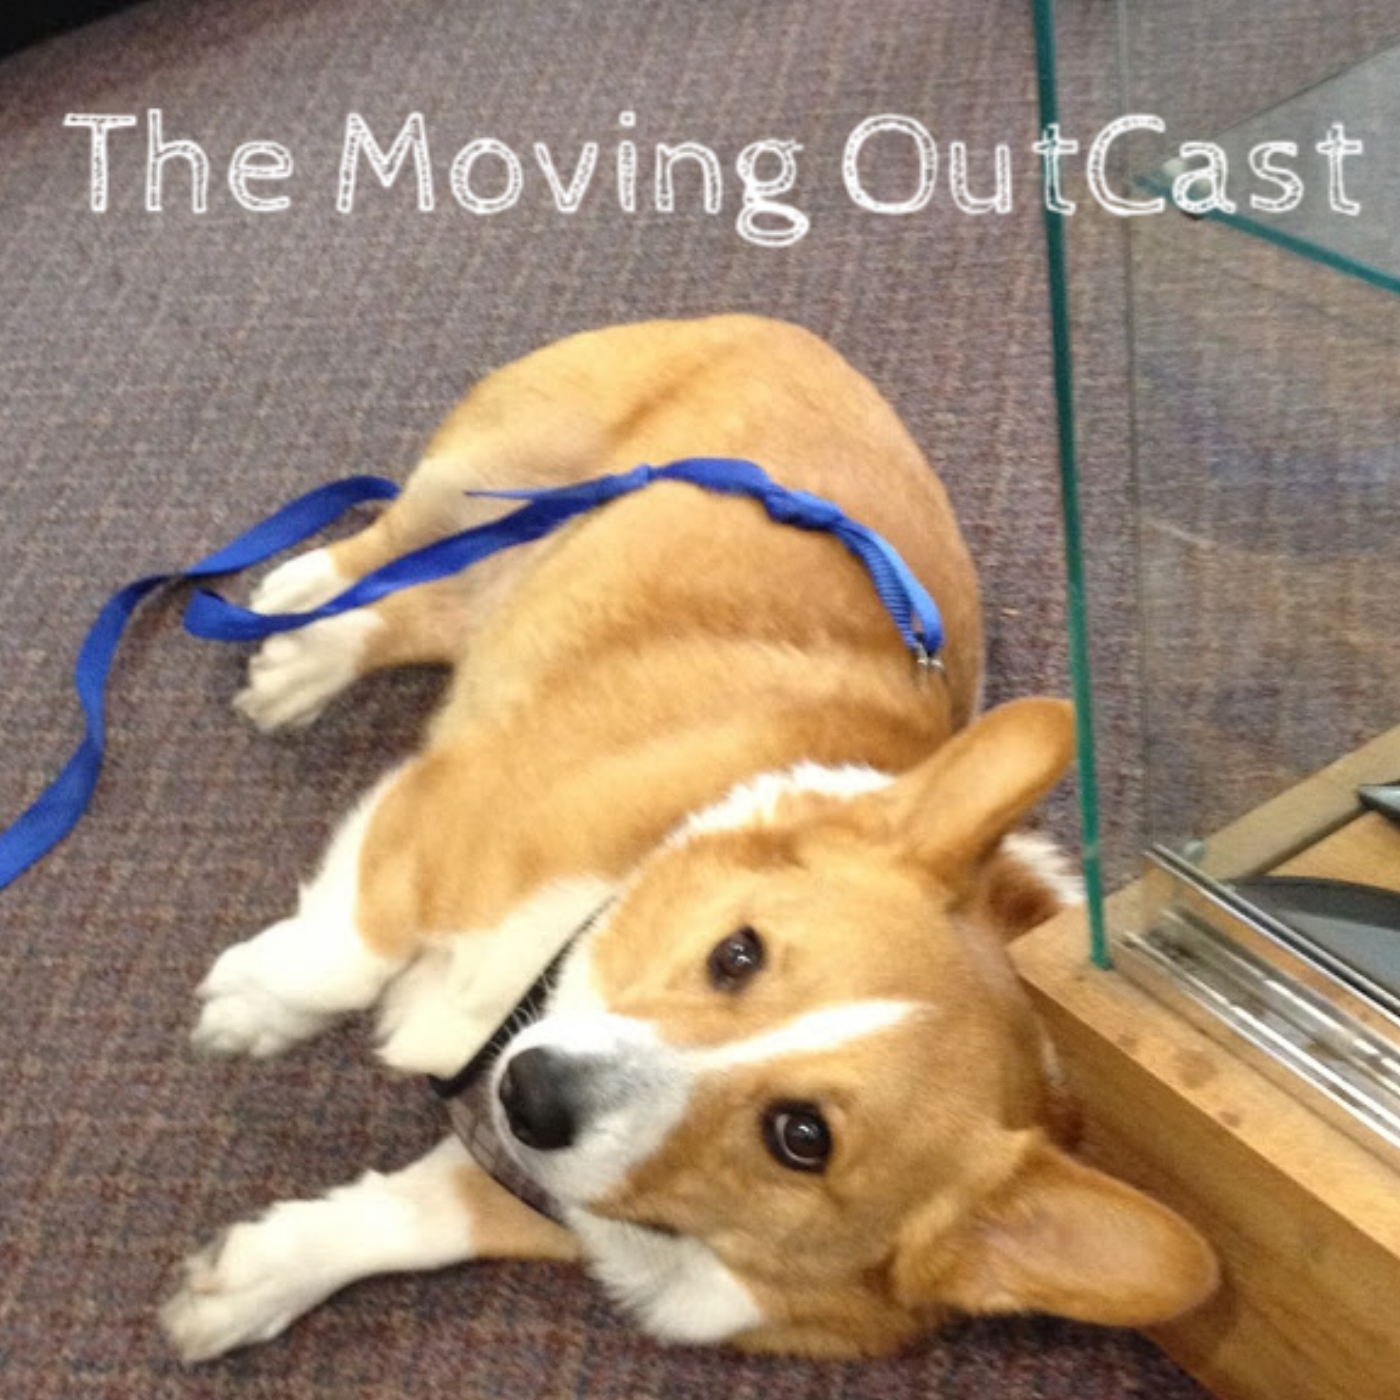 The Moving OutCast